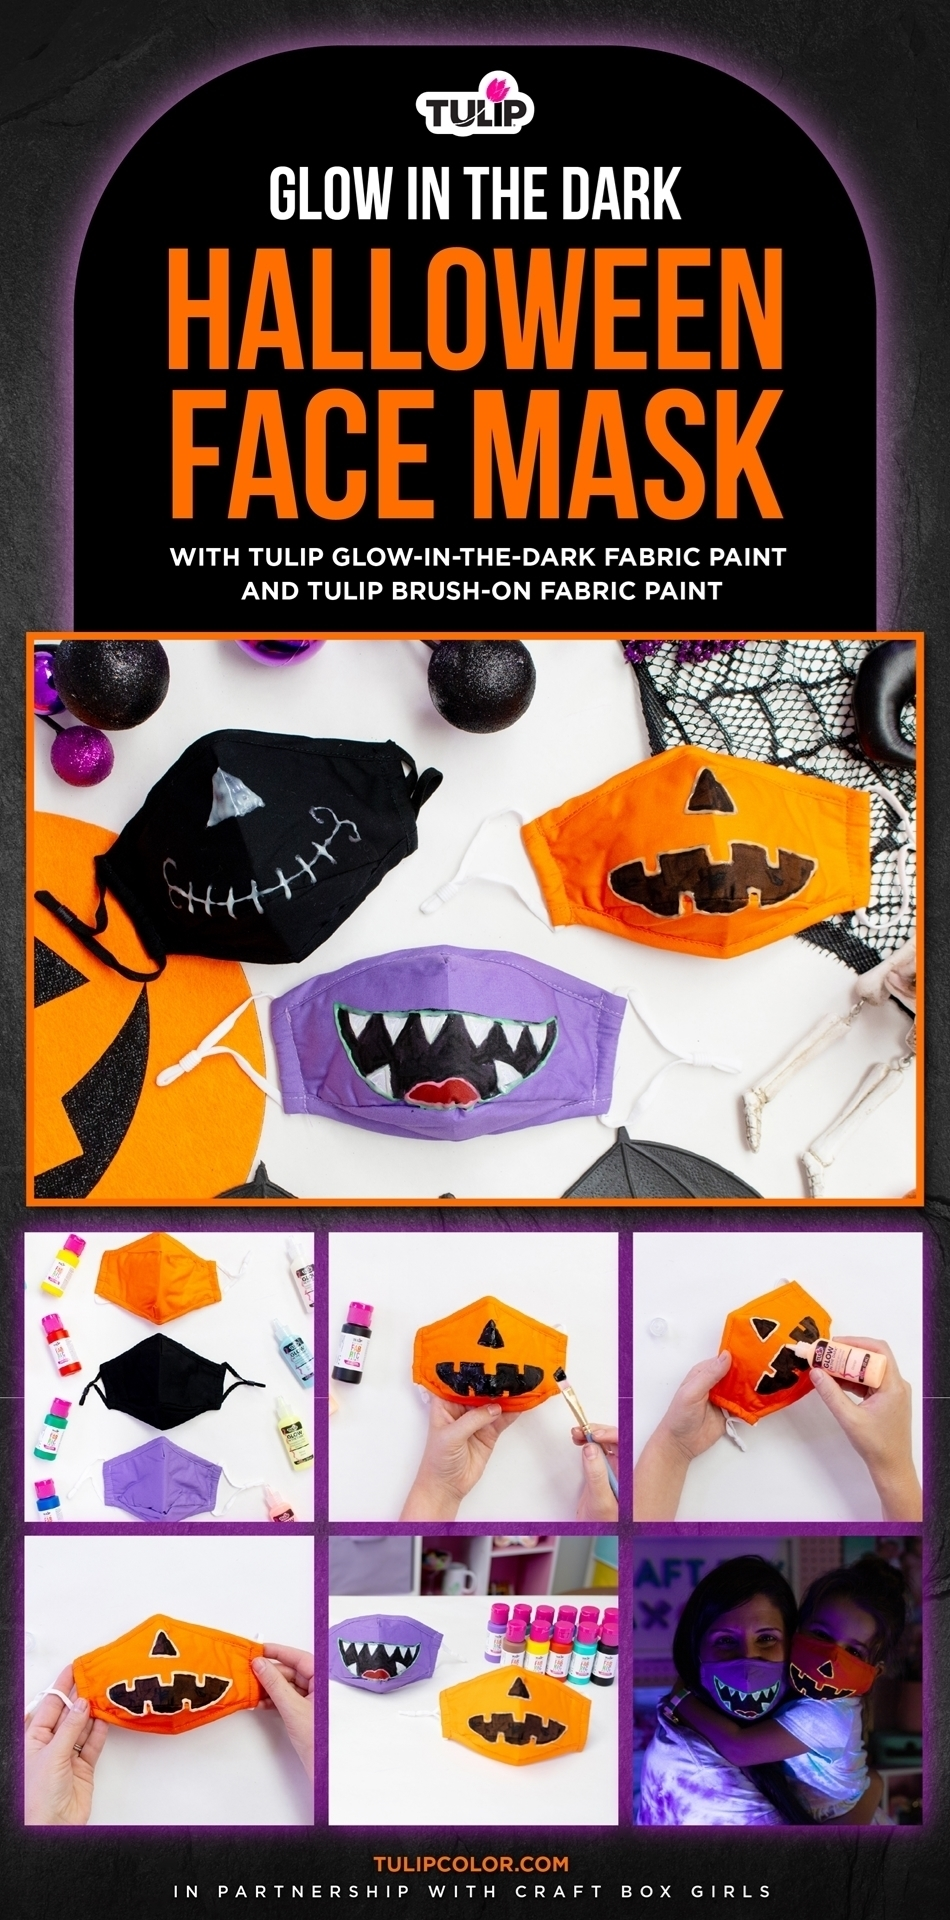 Spooky Stylish Halloween Face Masks with Glow in the Dark Fabric Paint